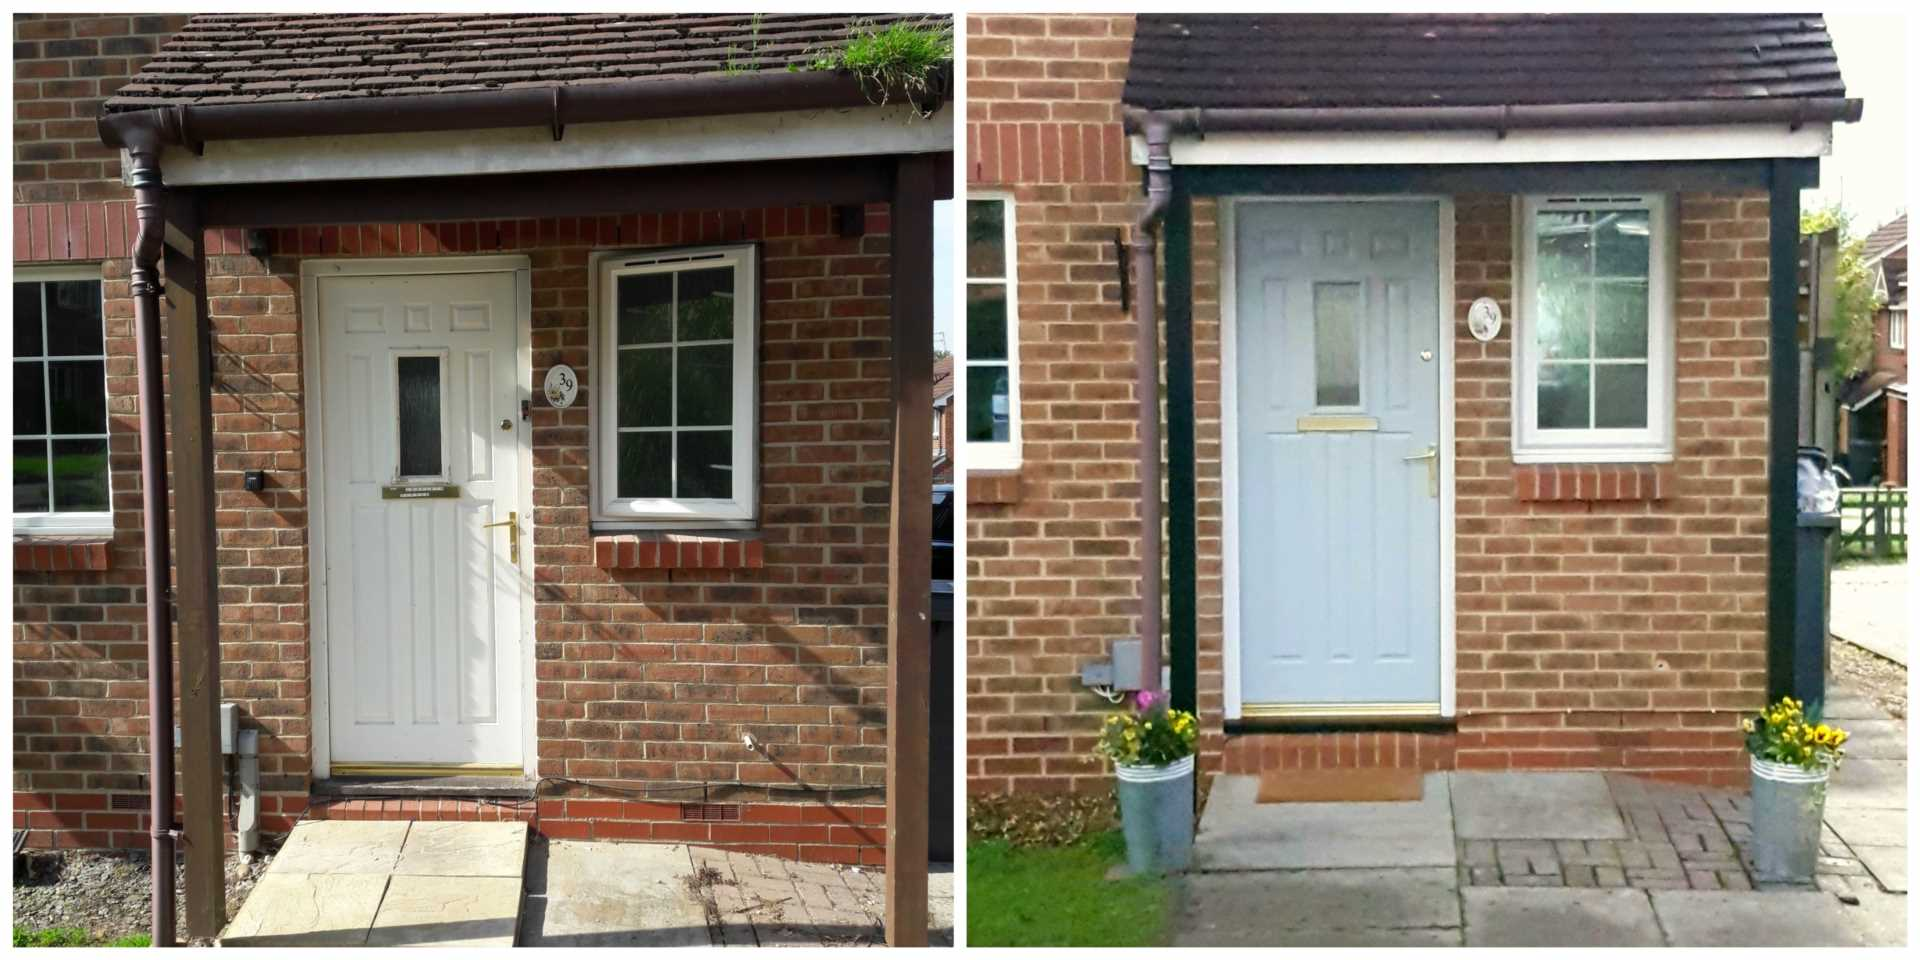 Curb Appeal – which door would you prefer to go through?